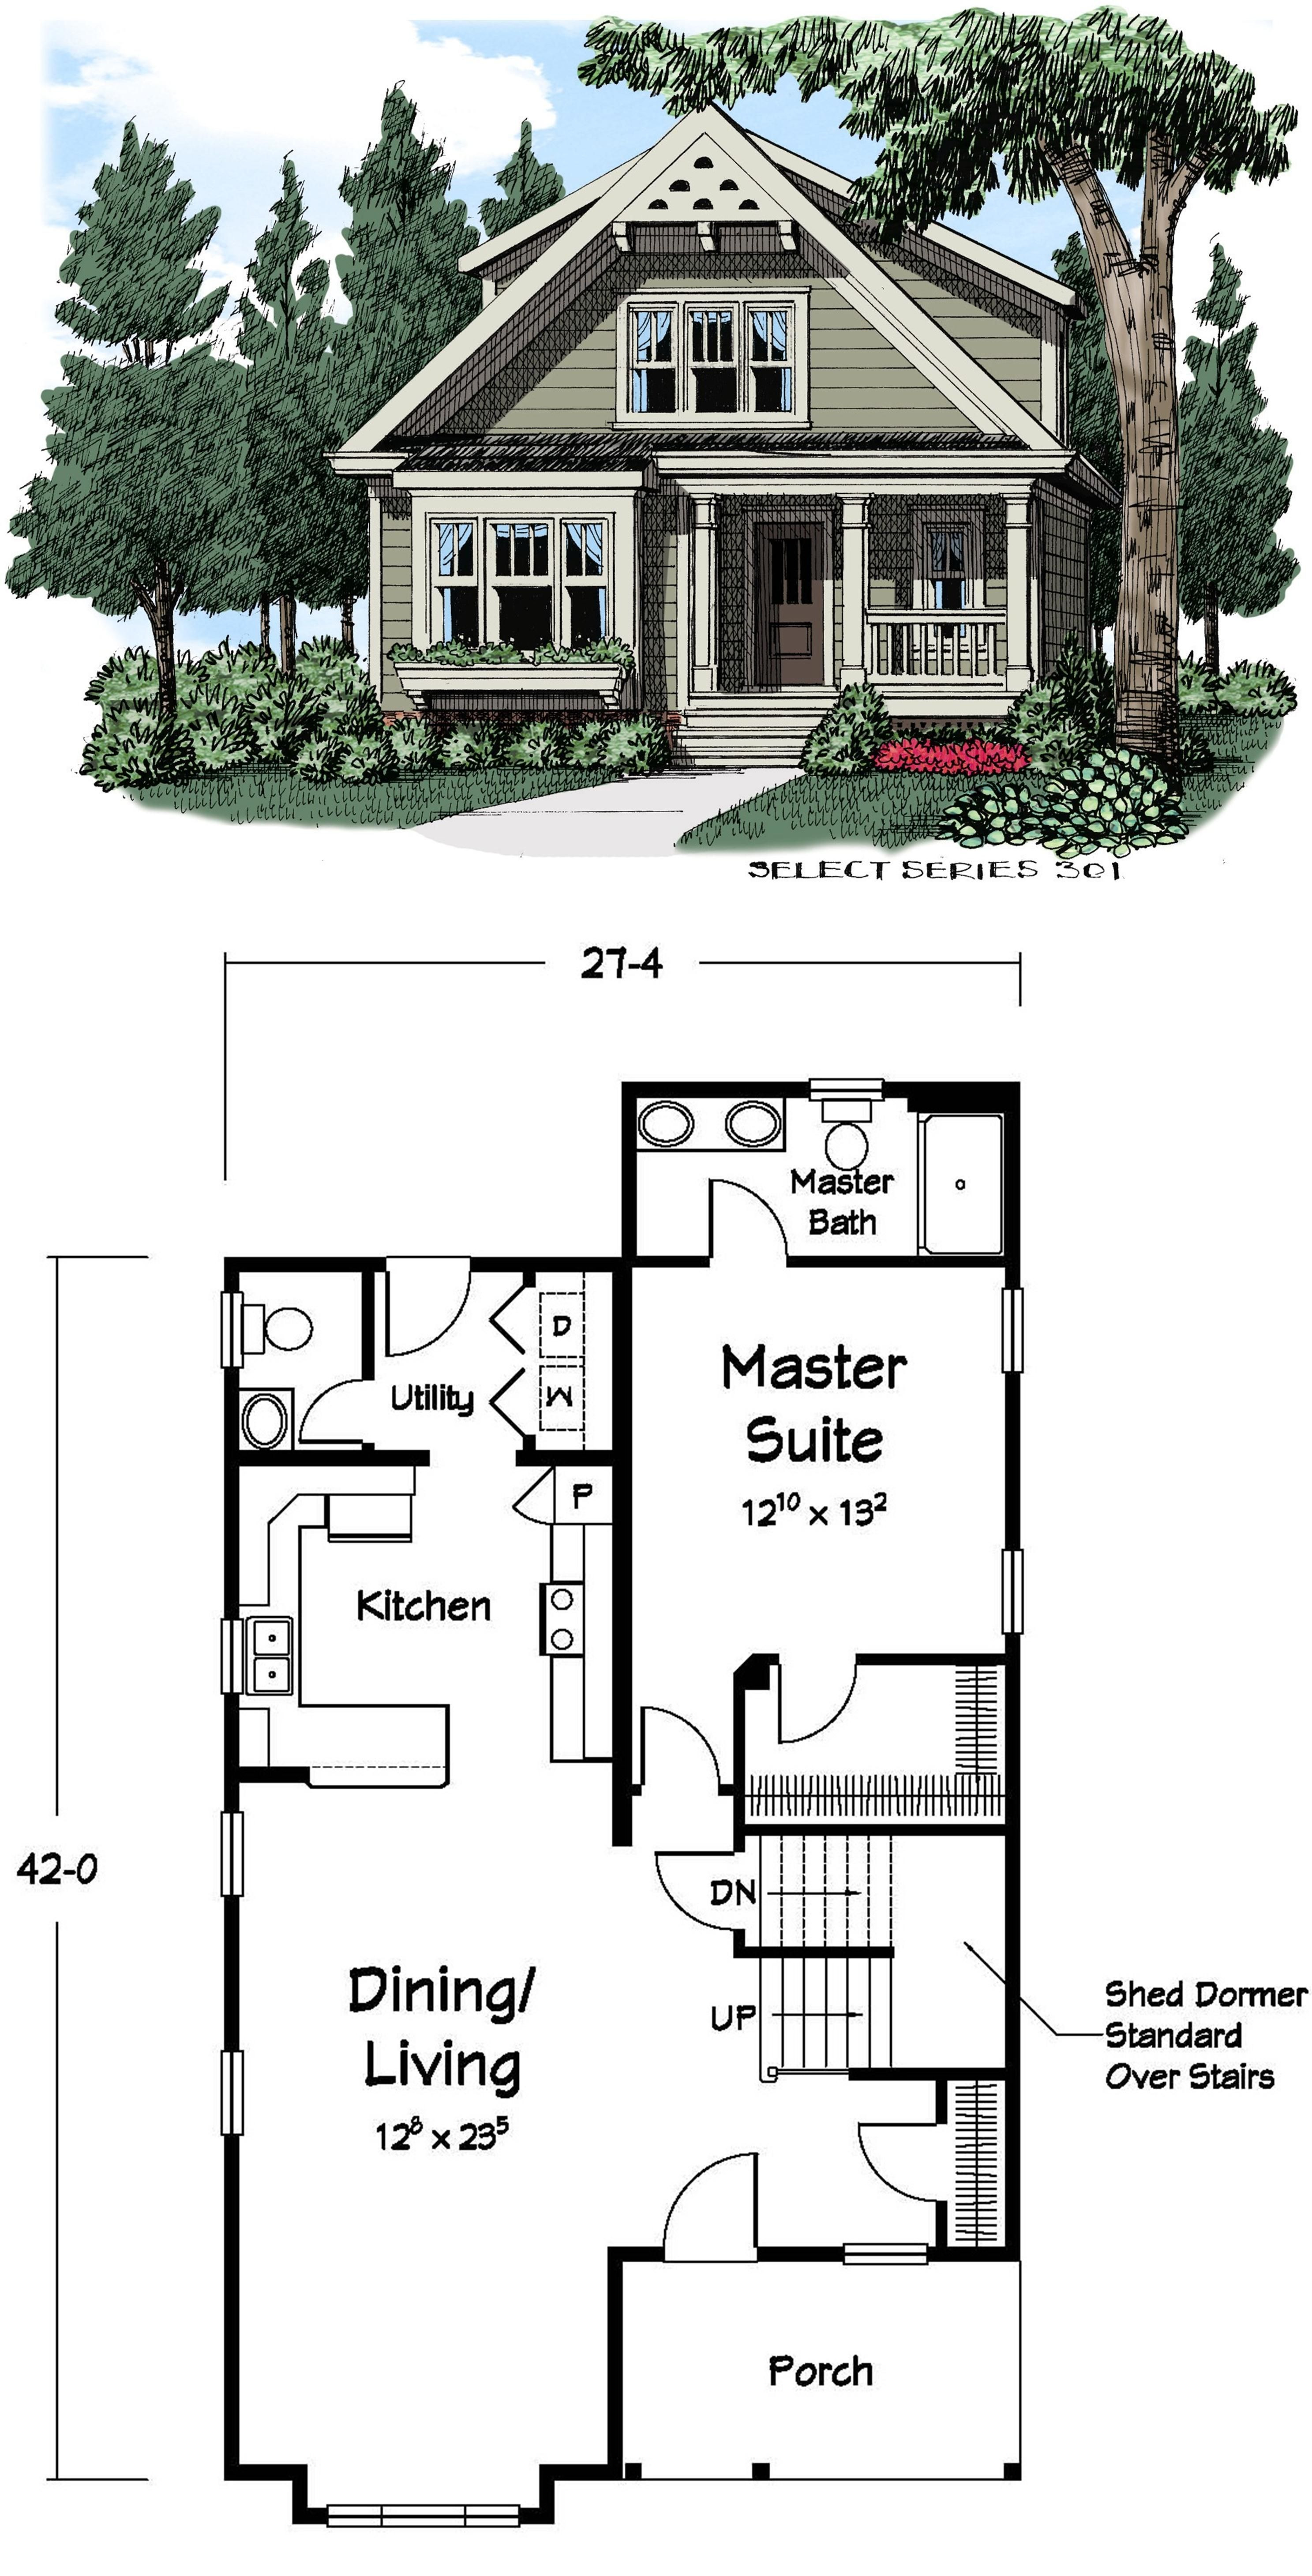 Texas Tiny House Plans New Add Two Bedrooms and An Office On the Left Side Of the House